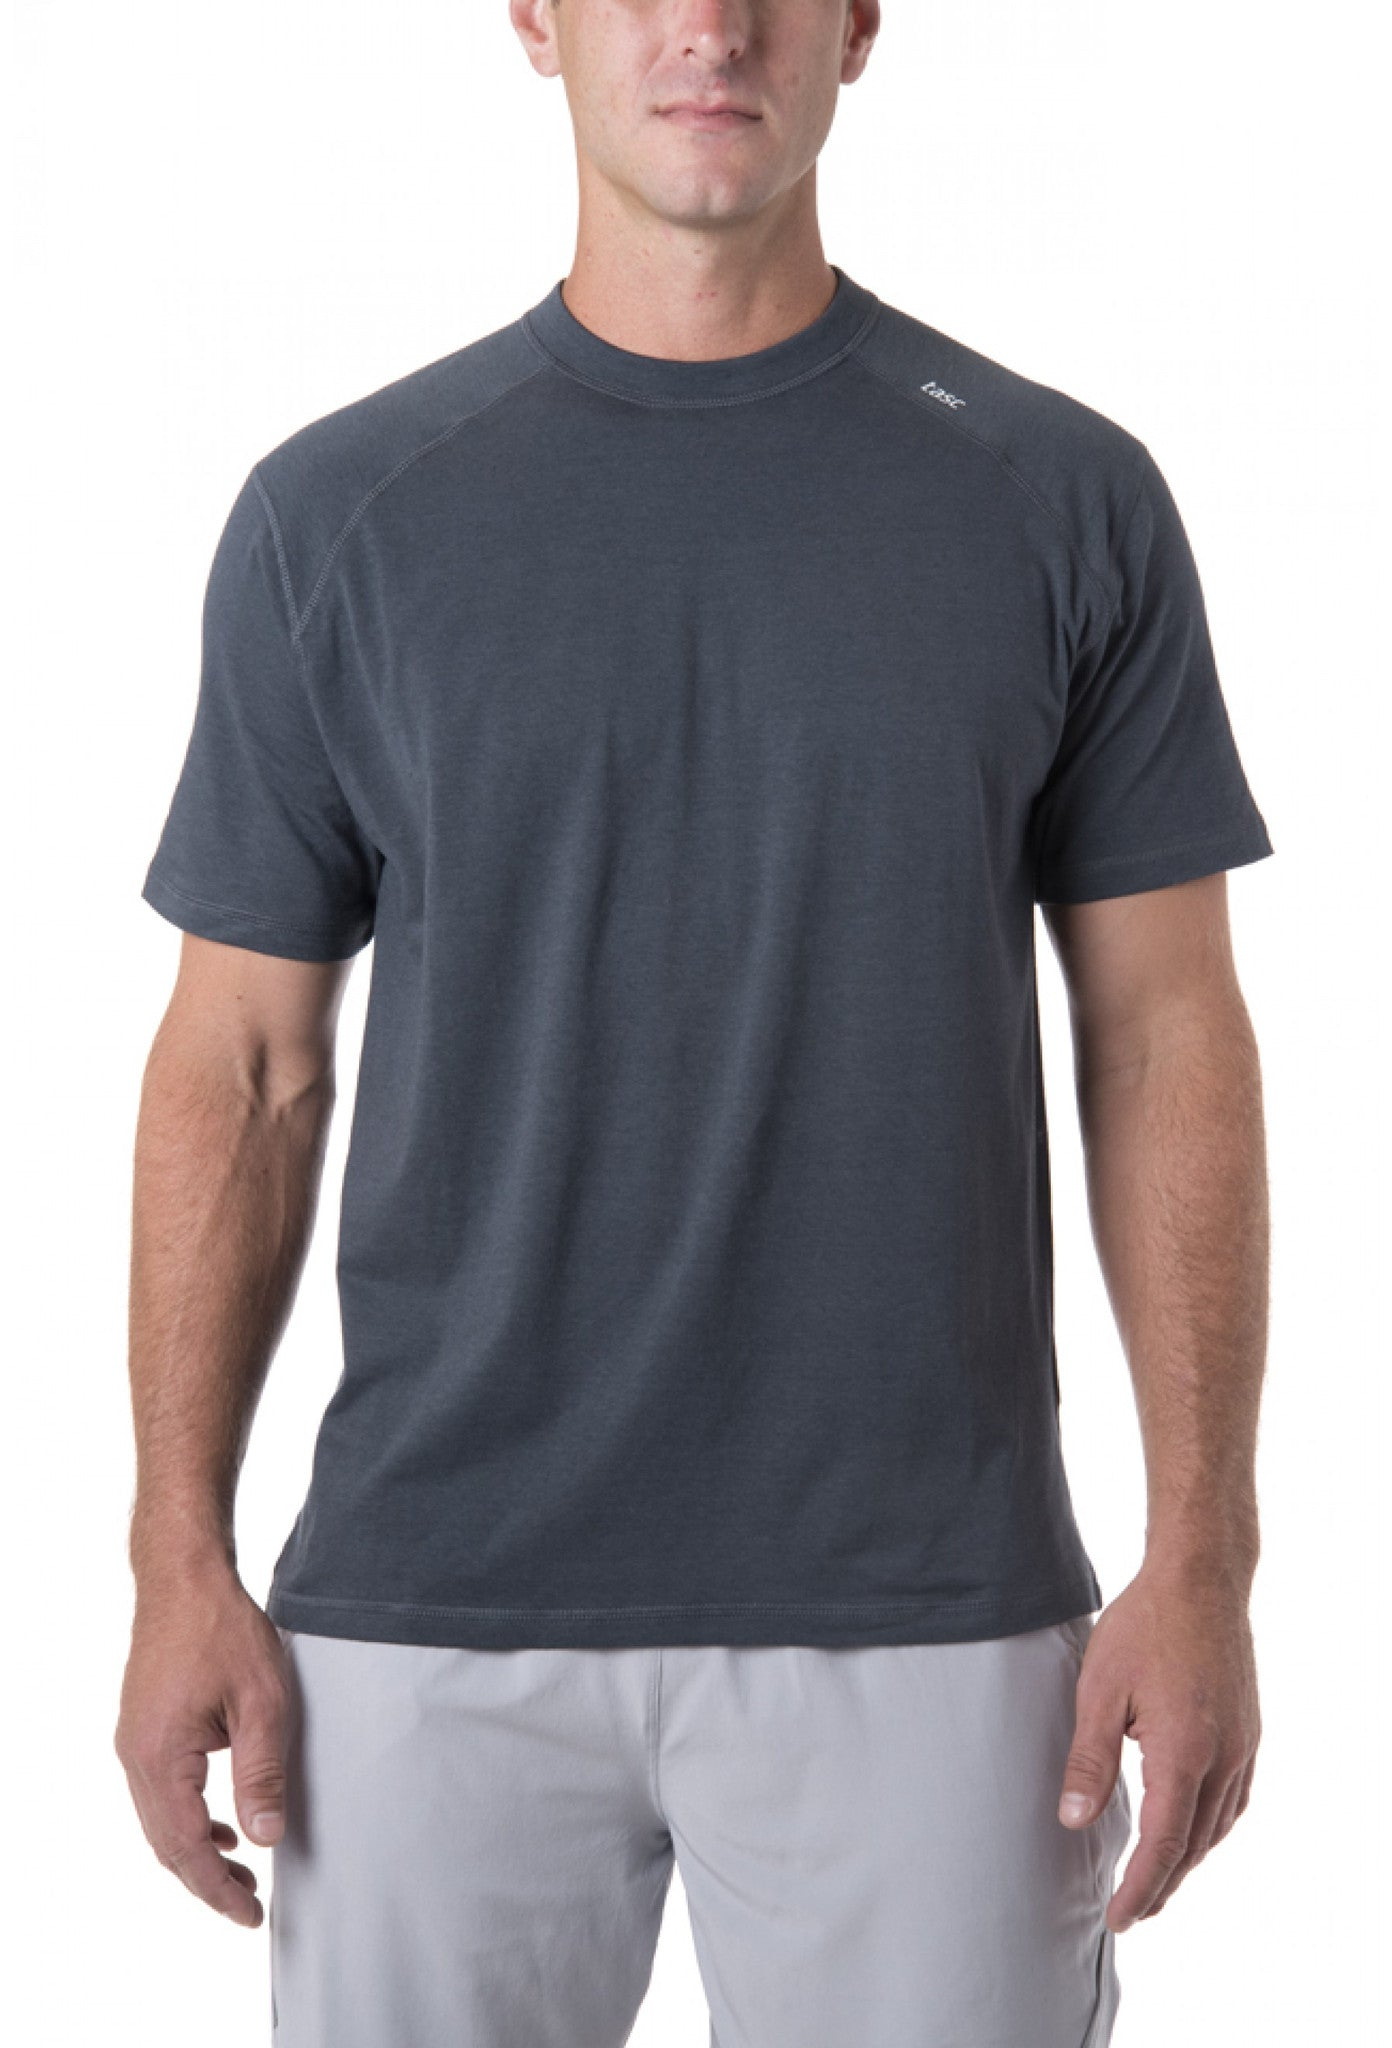 Tasc Performance Carrollton Crew Neck Tee T-M-110, Gunmetal